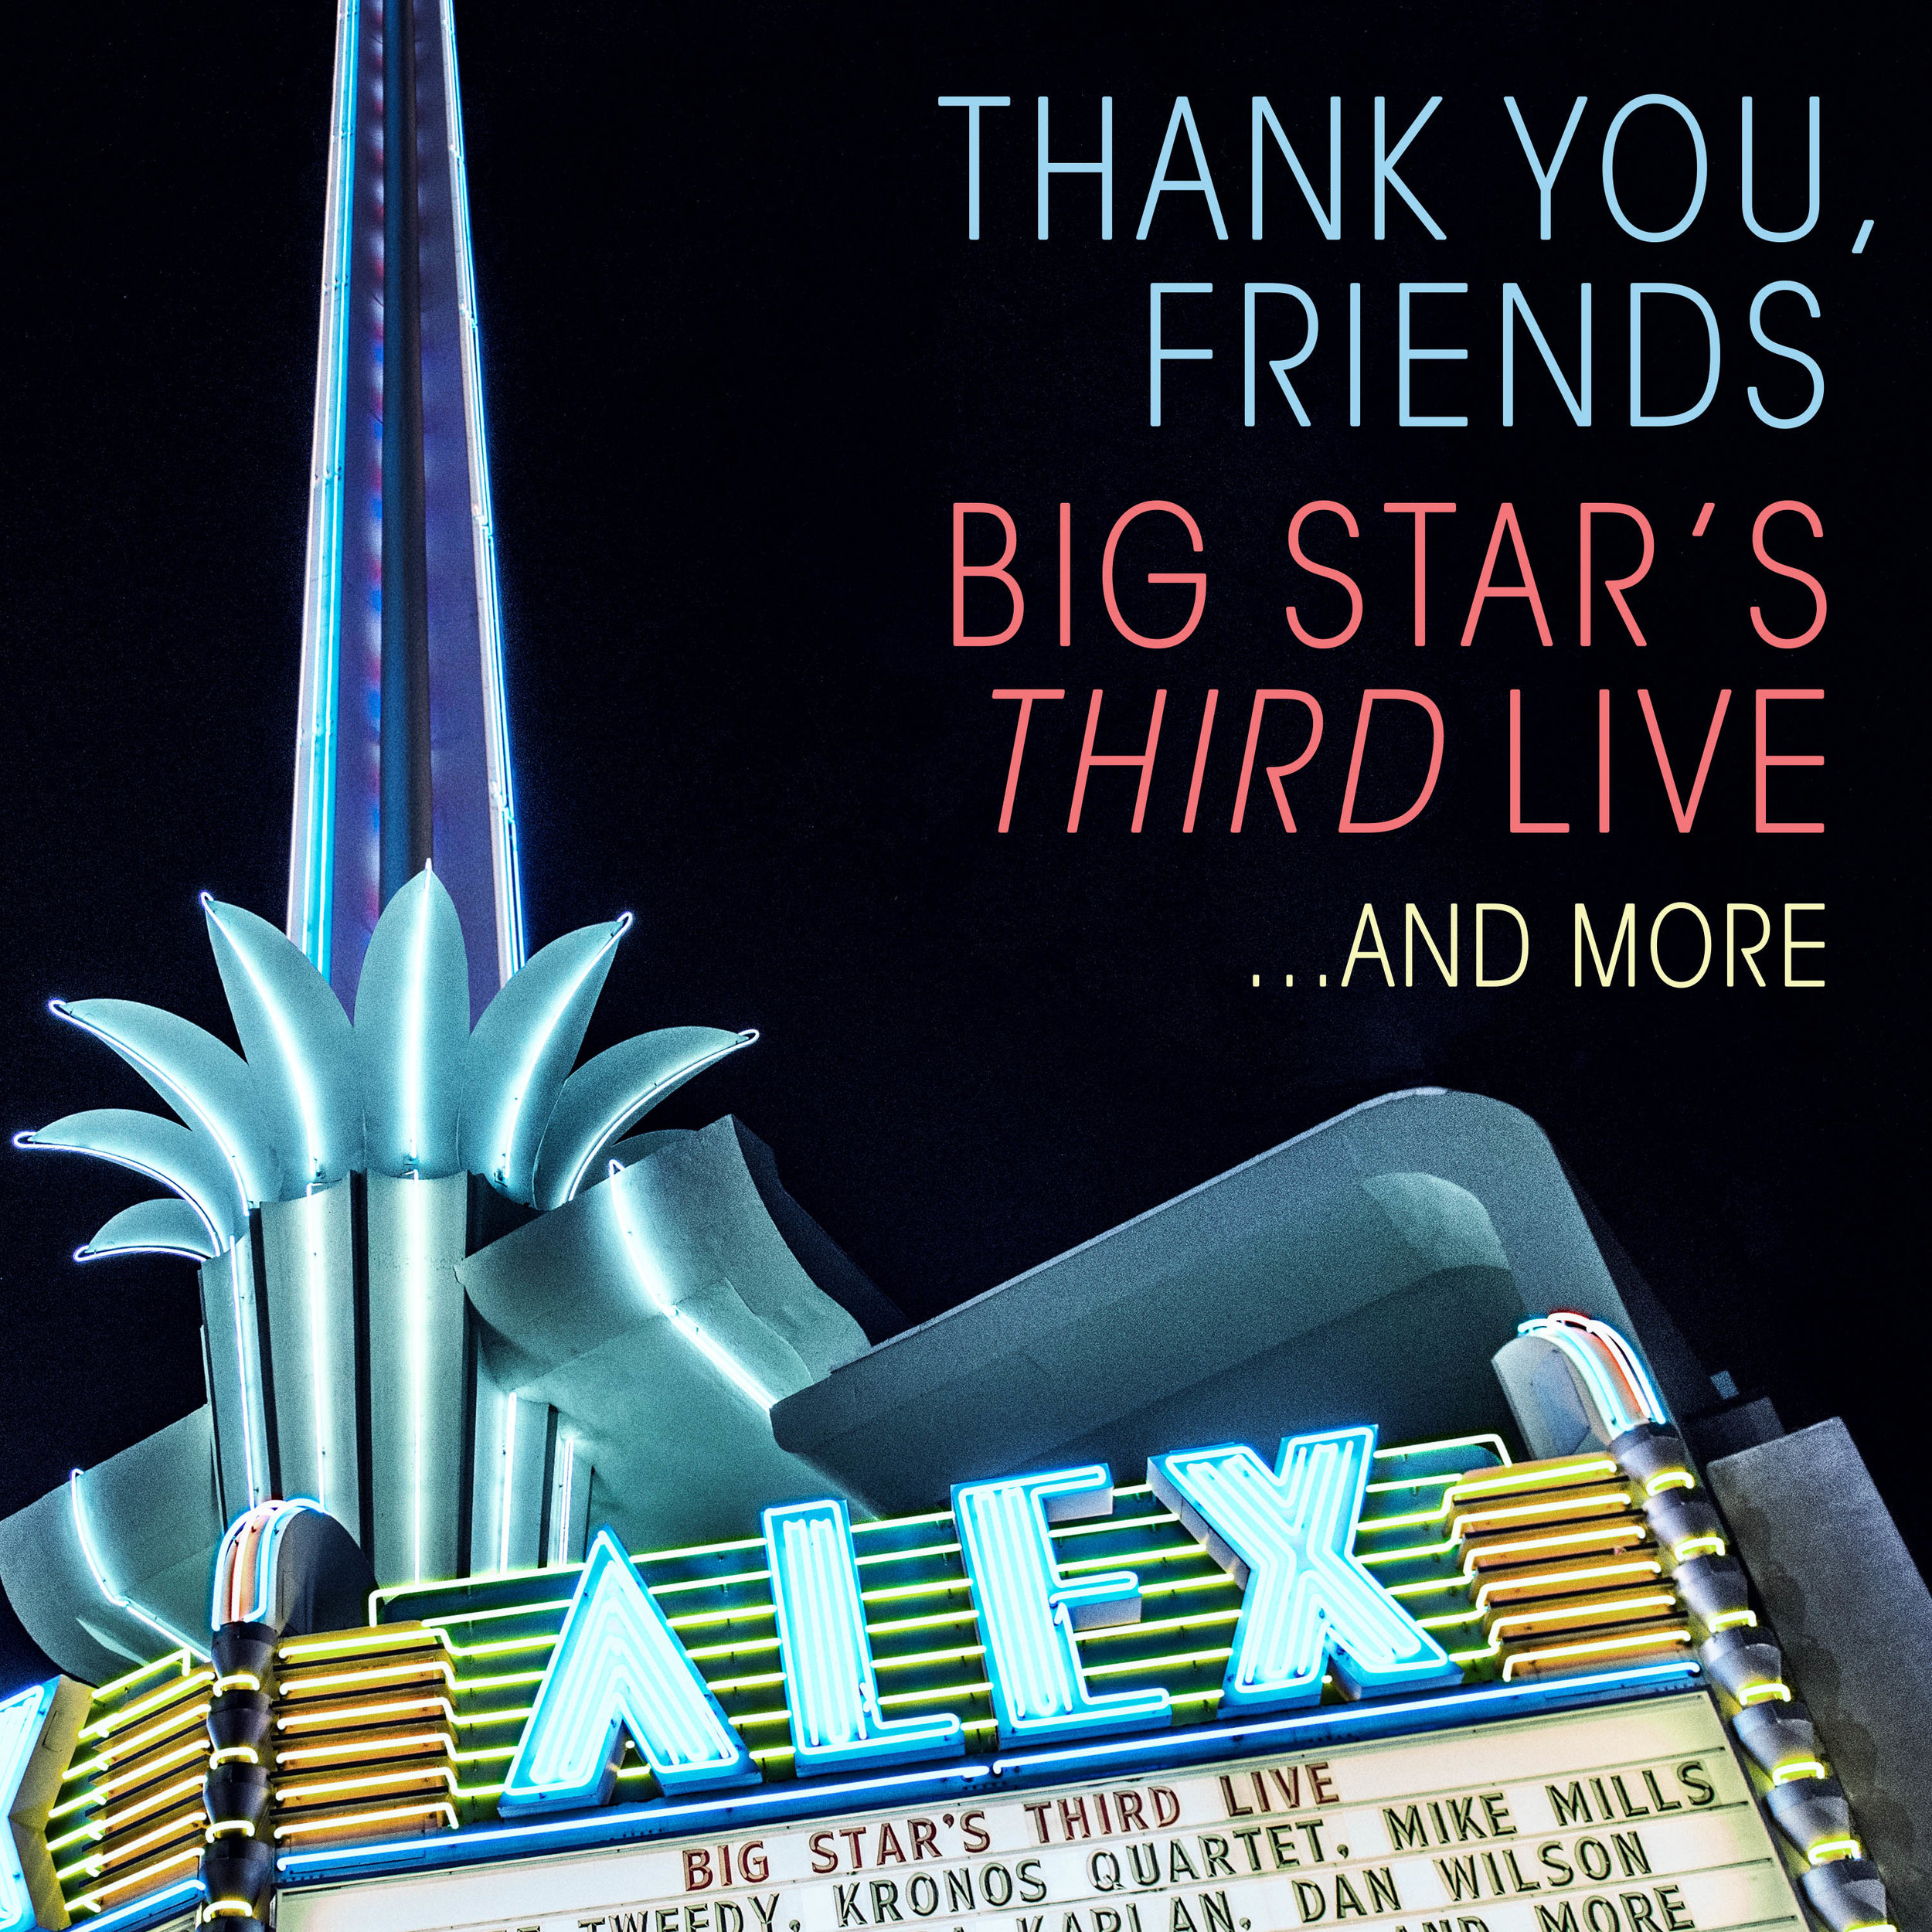 """Thank     You     Friends: Big Star's Third Live    A warm-hearted and surprisingly uplifting tribute to a record, and band, once regarded as a brilliantly hopeless downer. Established figures like Ken Stringfellow (Posies) and Mike Mills (R.E.M.) join talented newcomers like Skylar Gudasz in recreating the legendary """"lost"""" Big Star record, plus a lot more, with A-list accompaniment by master musicians including the Kronos Quartet."""